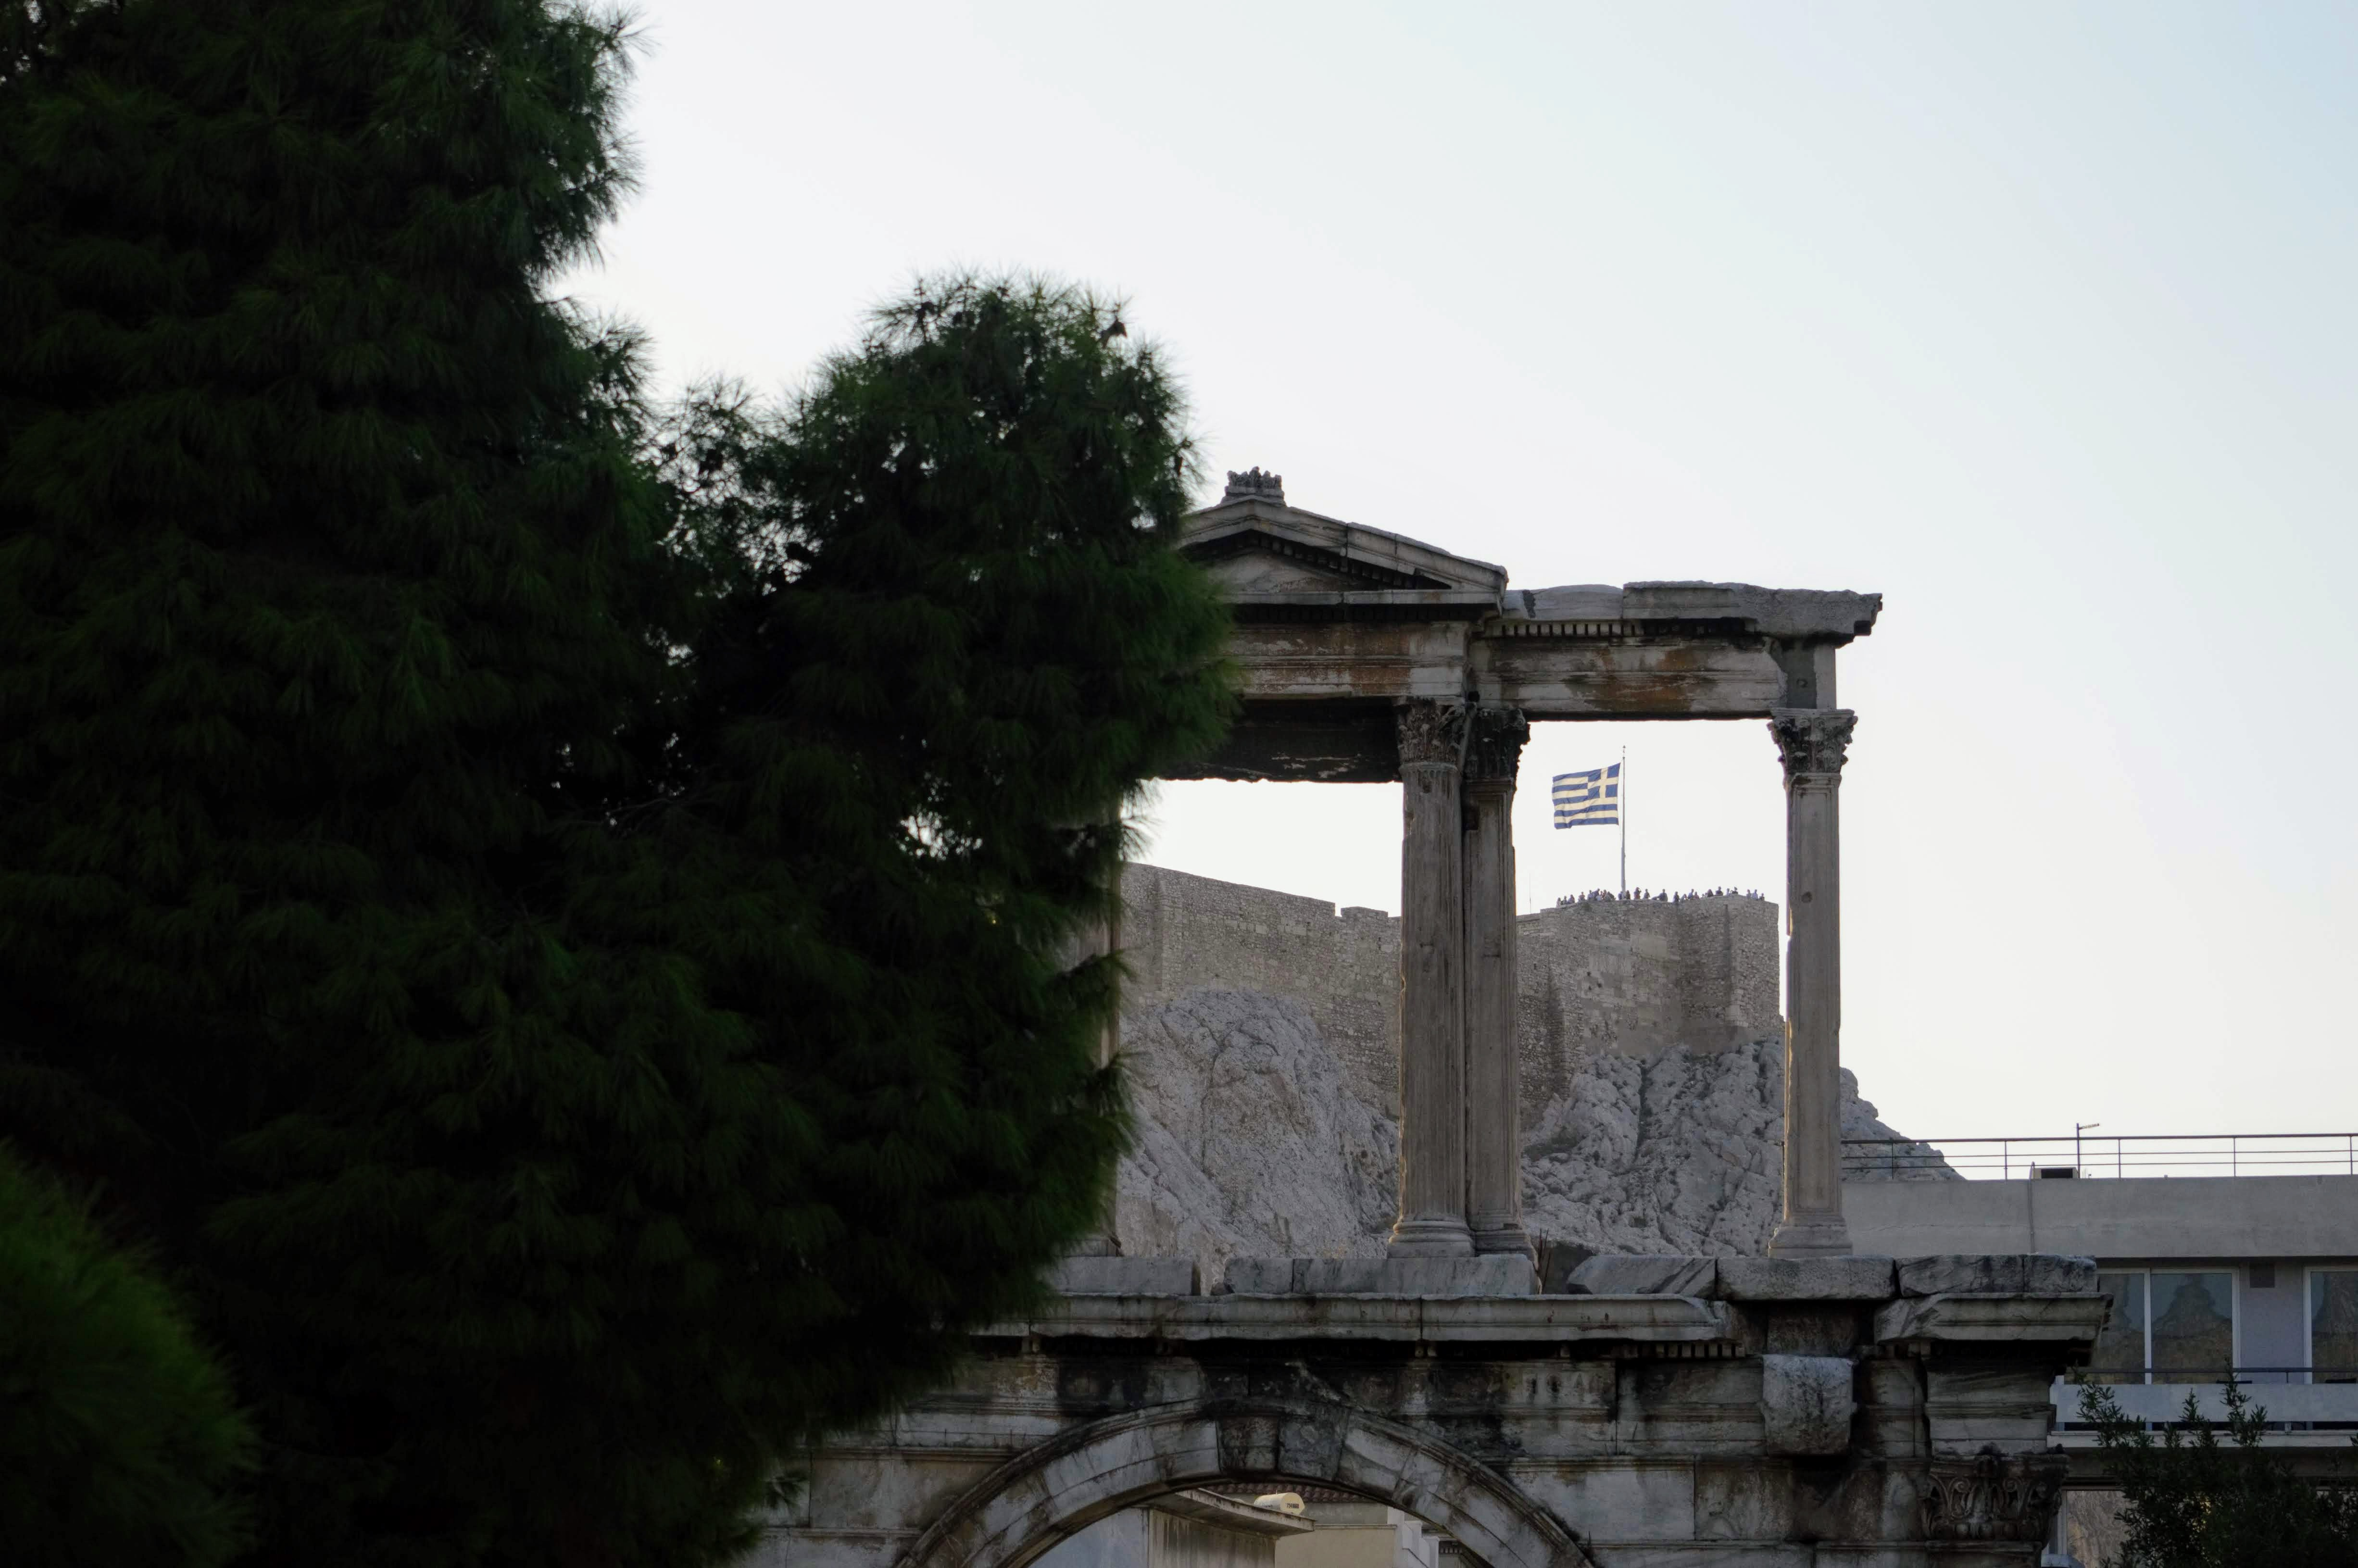 Hadrian's Arch - Athens, Greece, Europe - Honeymoon Part 1 - Athens is a beautiful capital city rich with history. With it's impressive Acropolis and quaint pedestrian streets, we headed here for our Honeymoon Part 1! Veritru Travel Blog